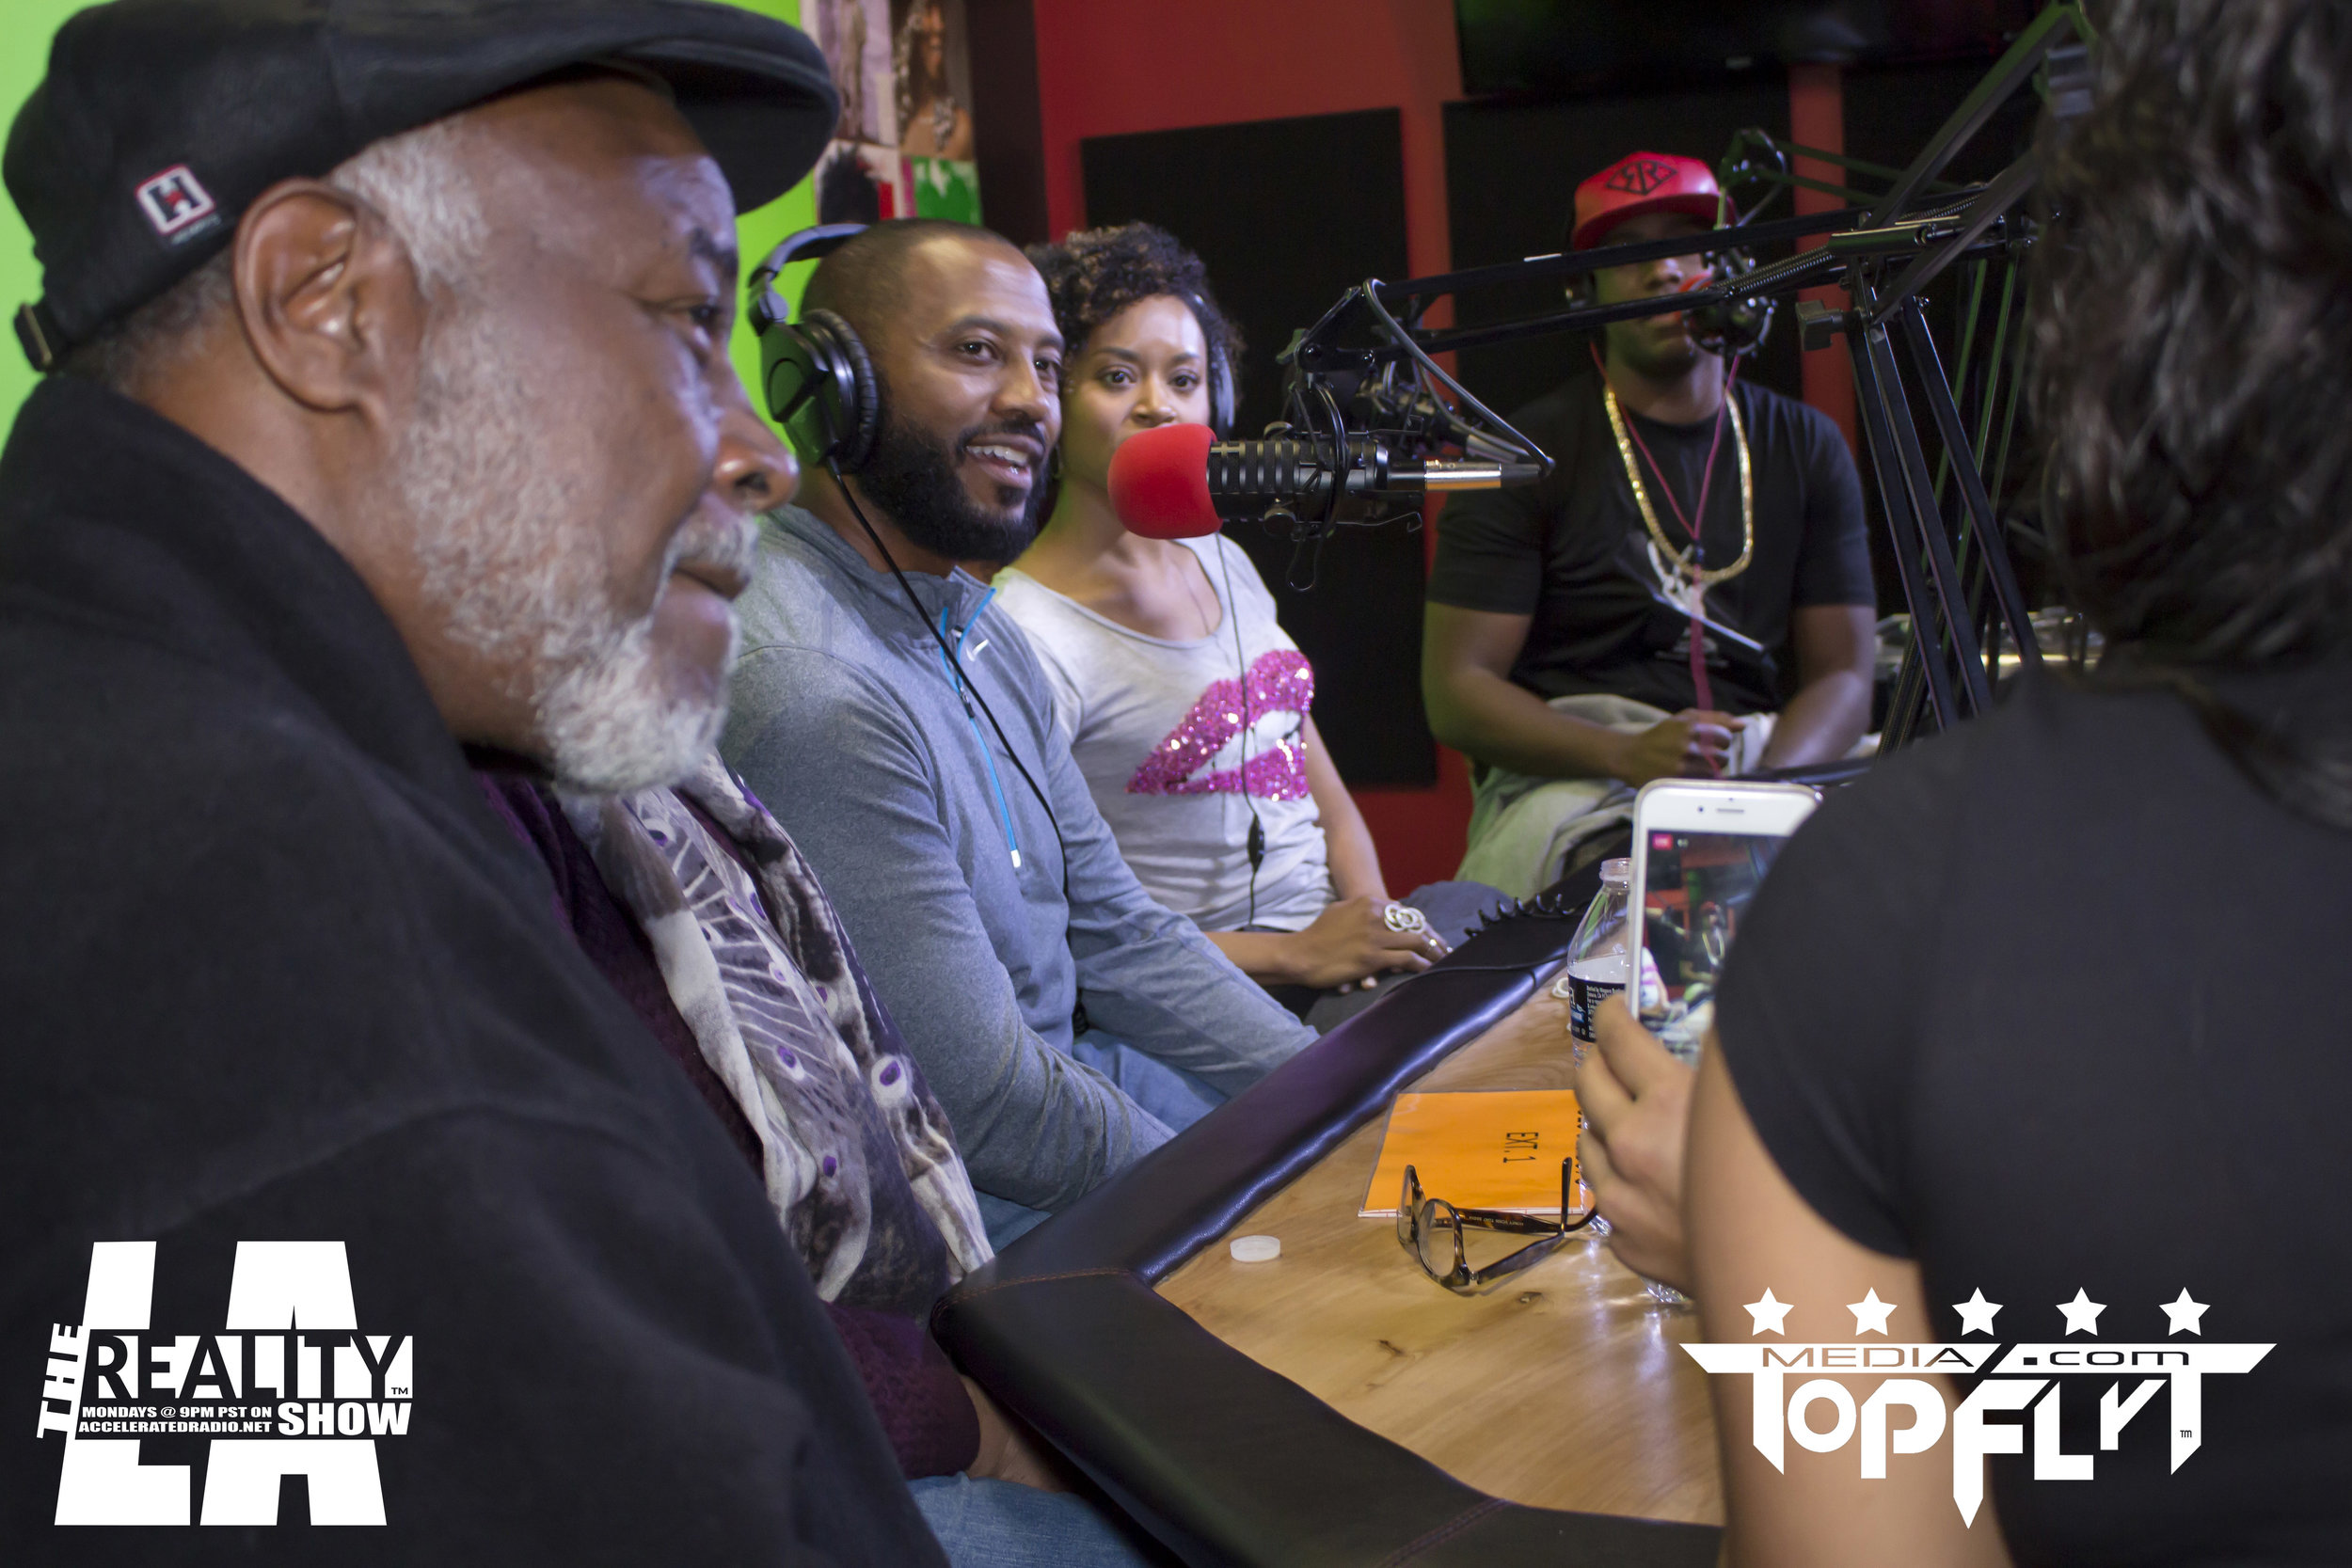 The Reality Show LA ft. Cast of FunnyMarriedStuff And Raquel Harris - 01-16-17_33.jpg